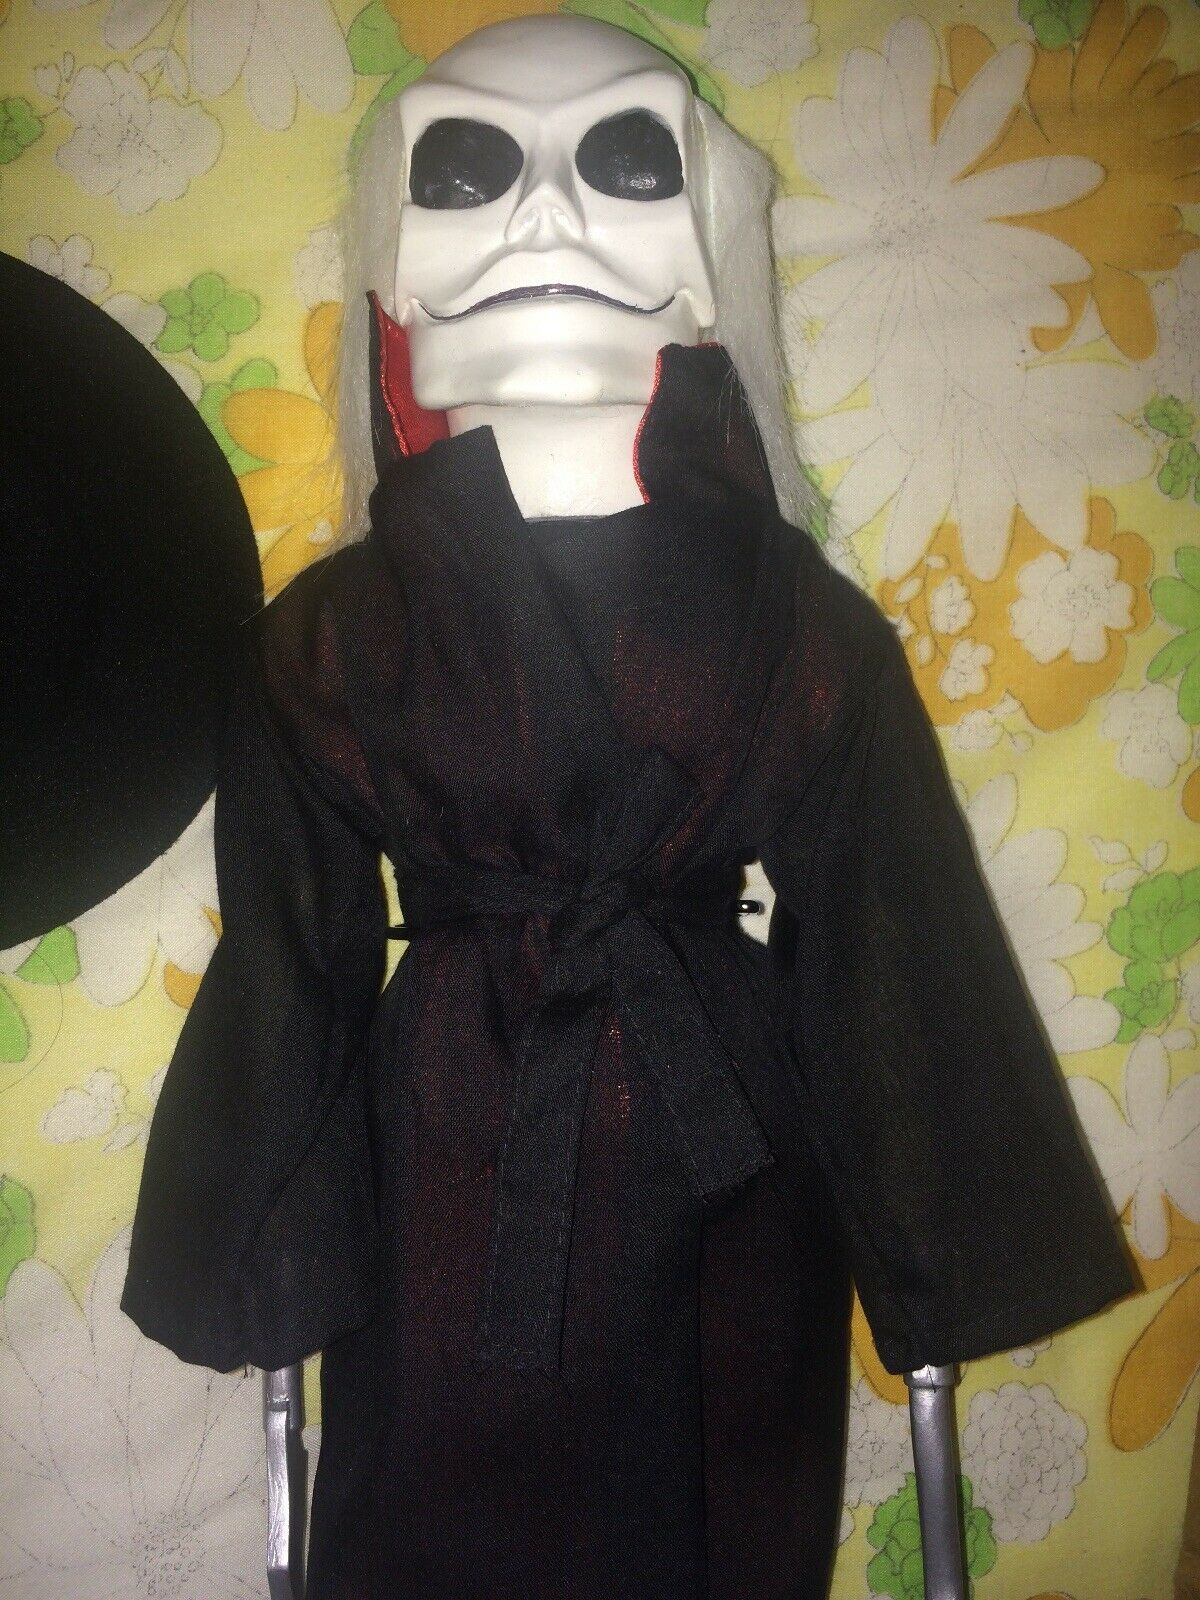 Full Moon Pictures PUPPET MASTER BLADE 1:1 Prop Replica Charles Band Horror